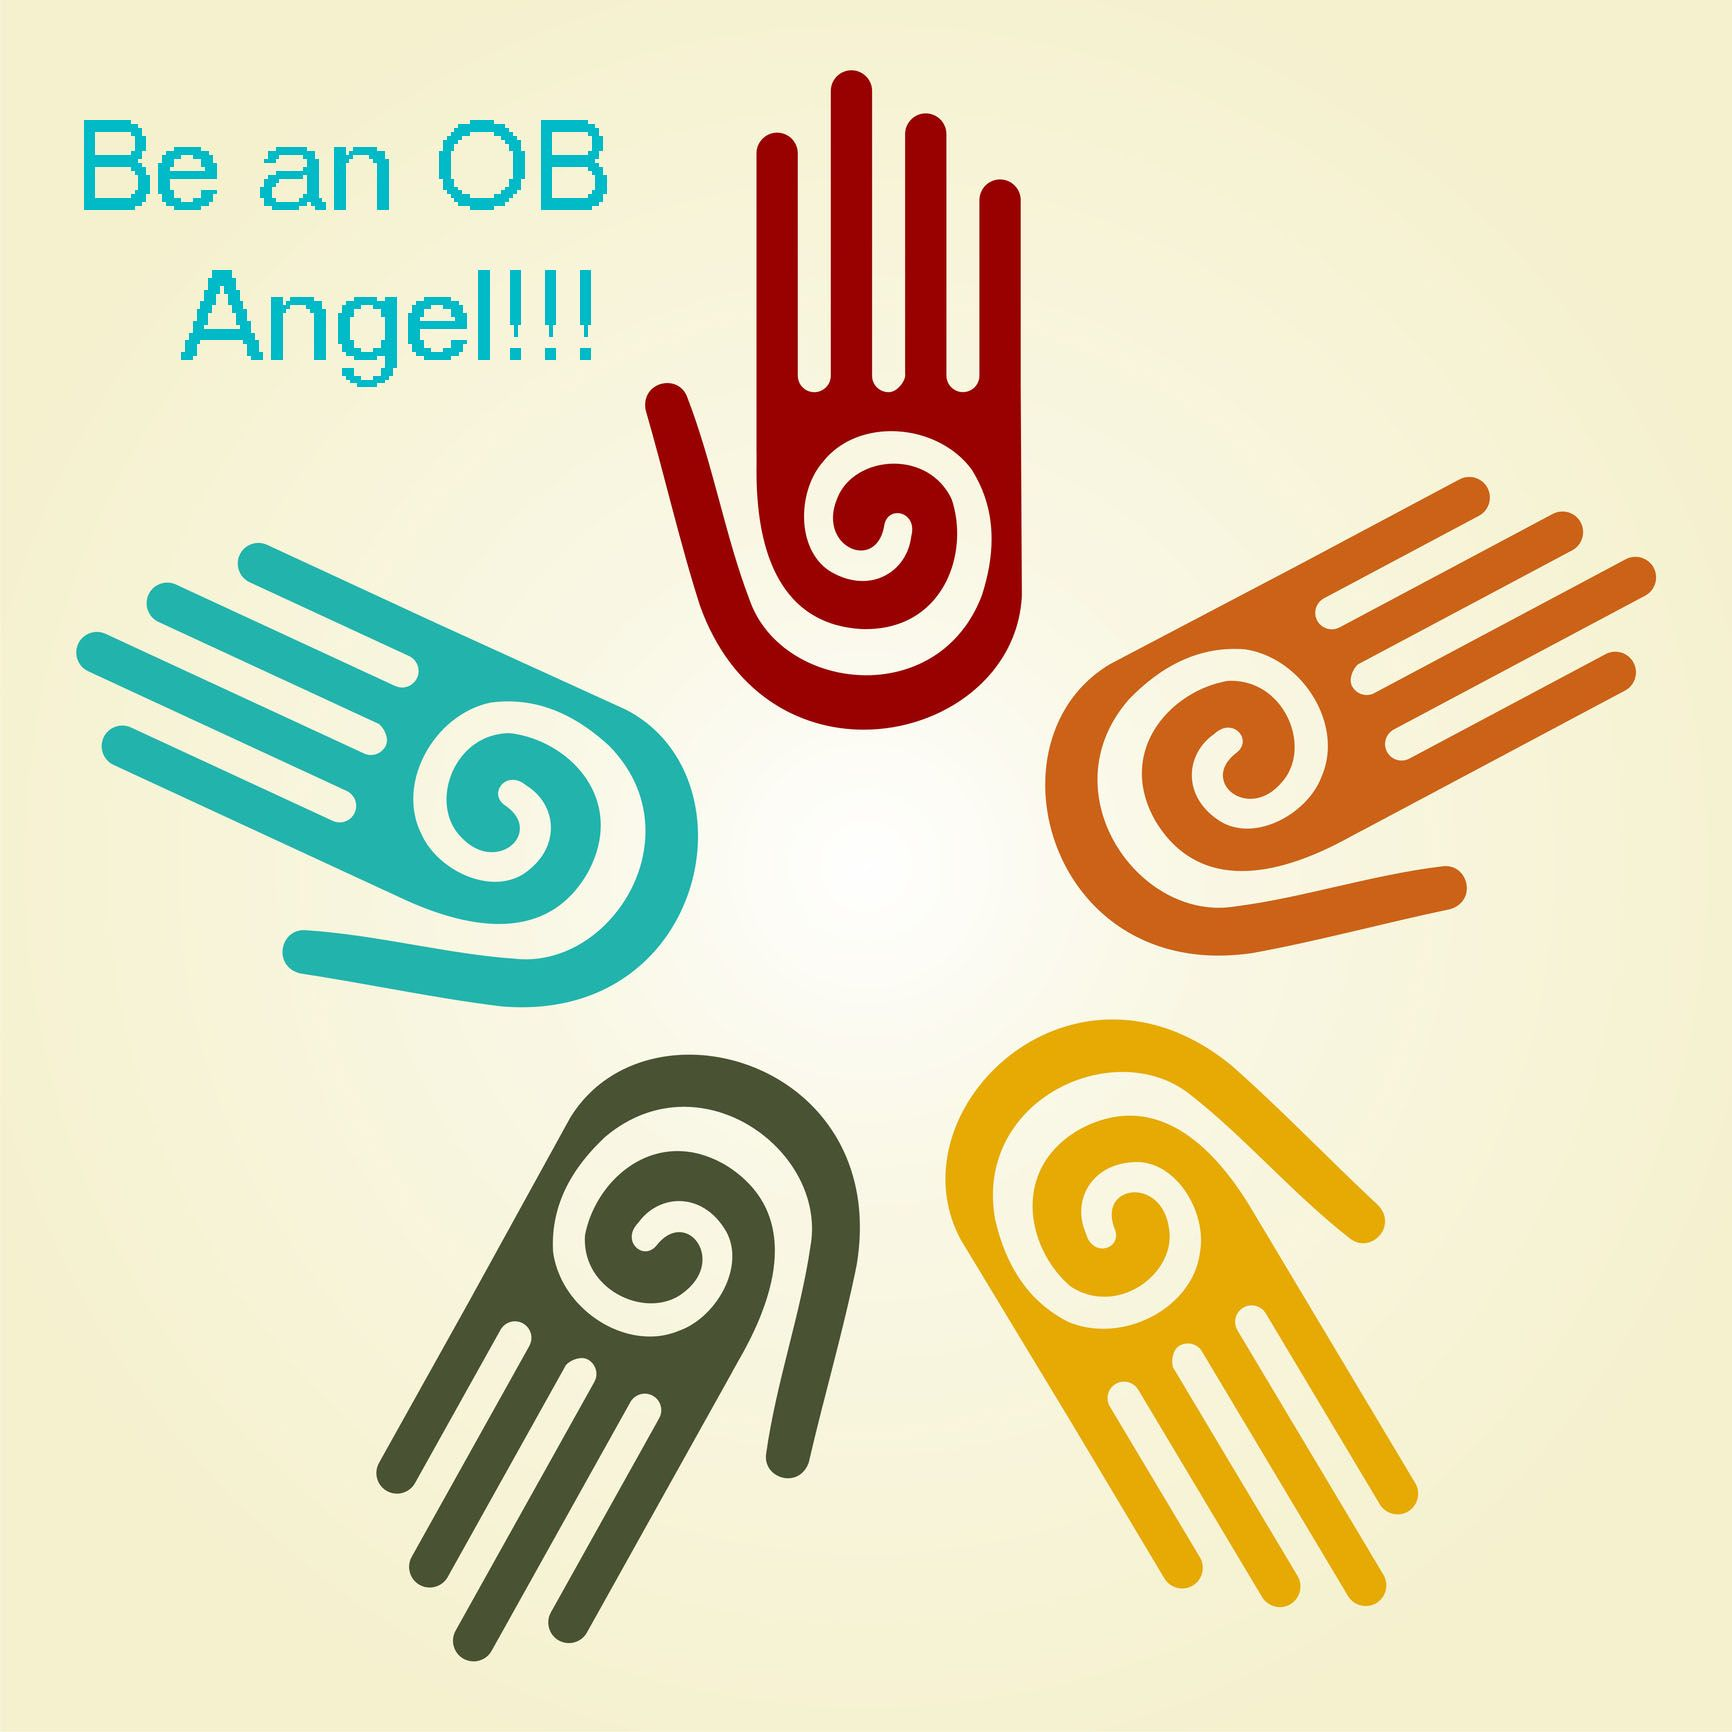 Ortho bionomy a new gentle massage modality all about body works silhouette hands hand with a spiral symbol on the palm on a circle of hands background vector available buycottarizona Image collections